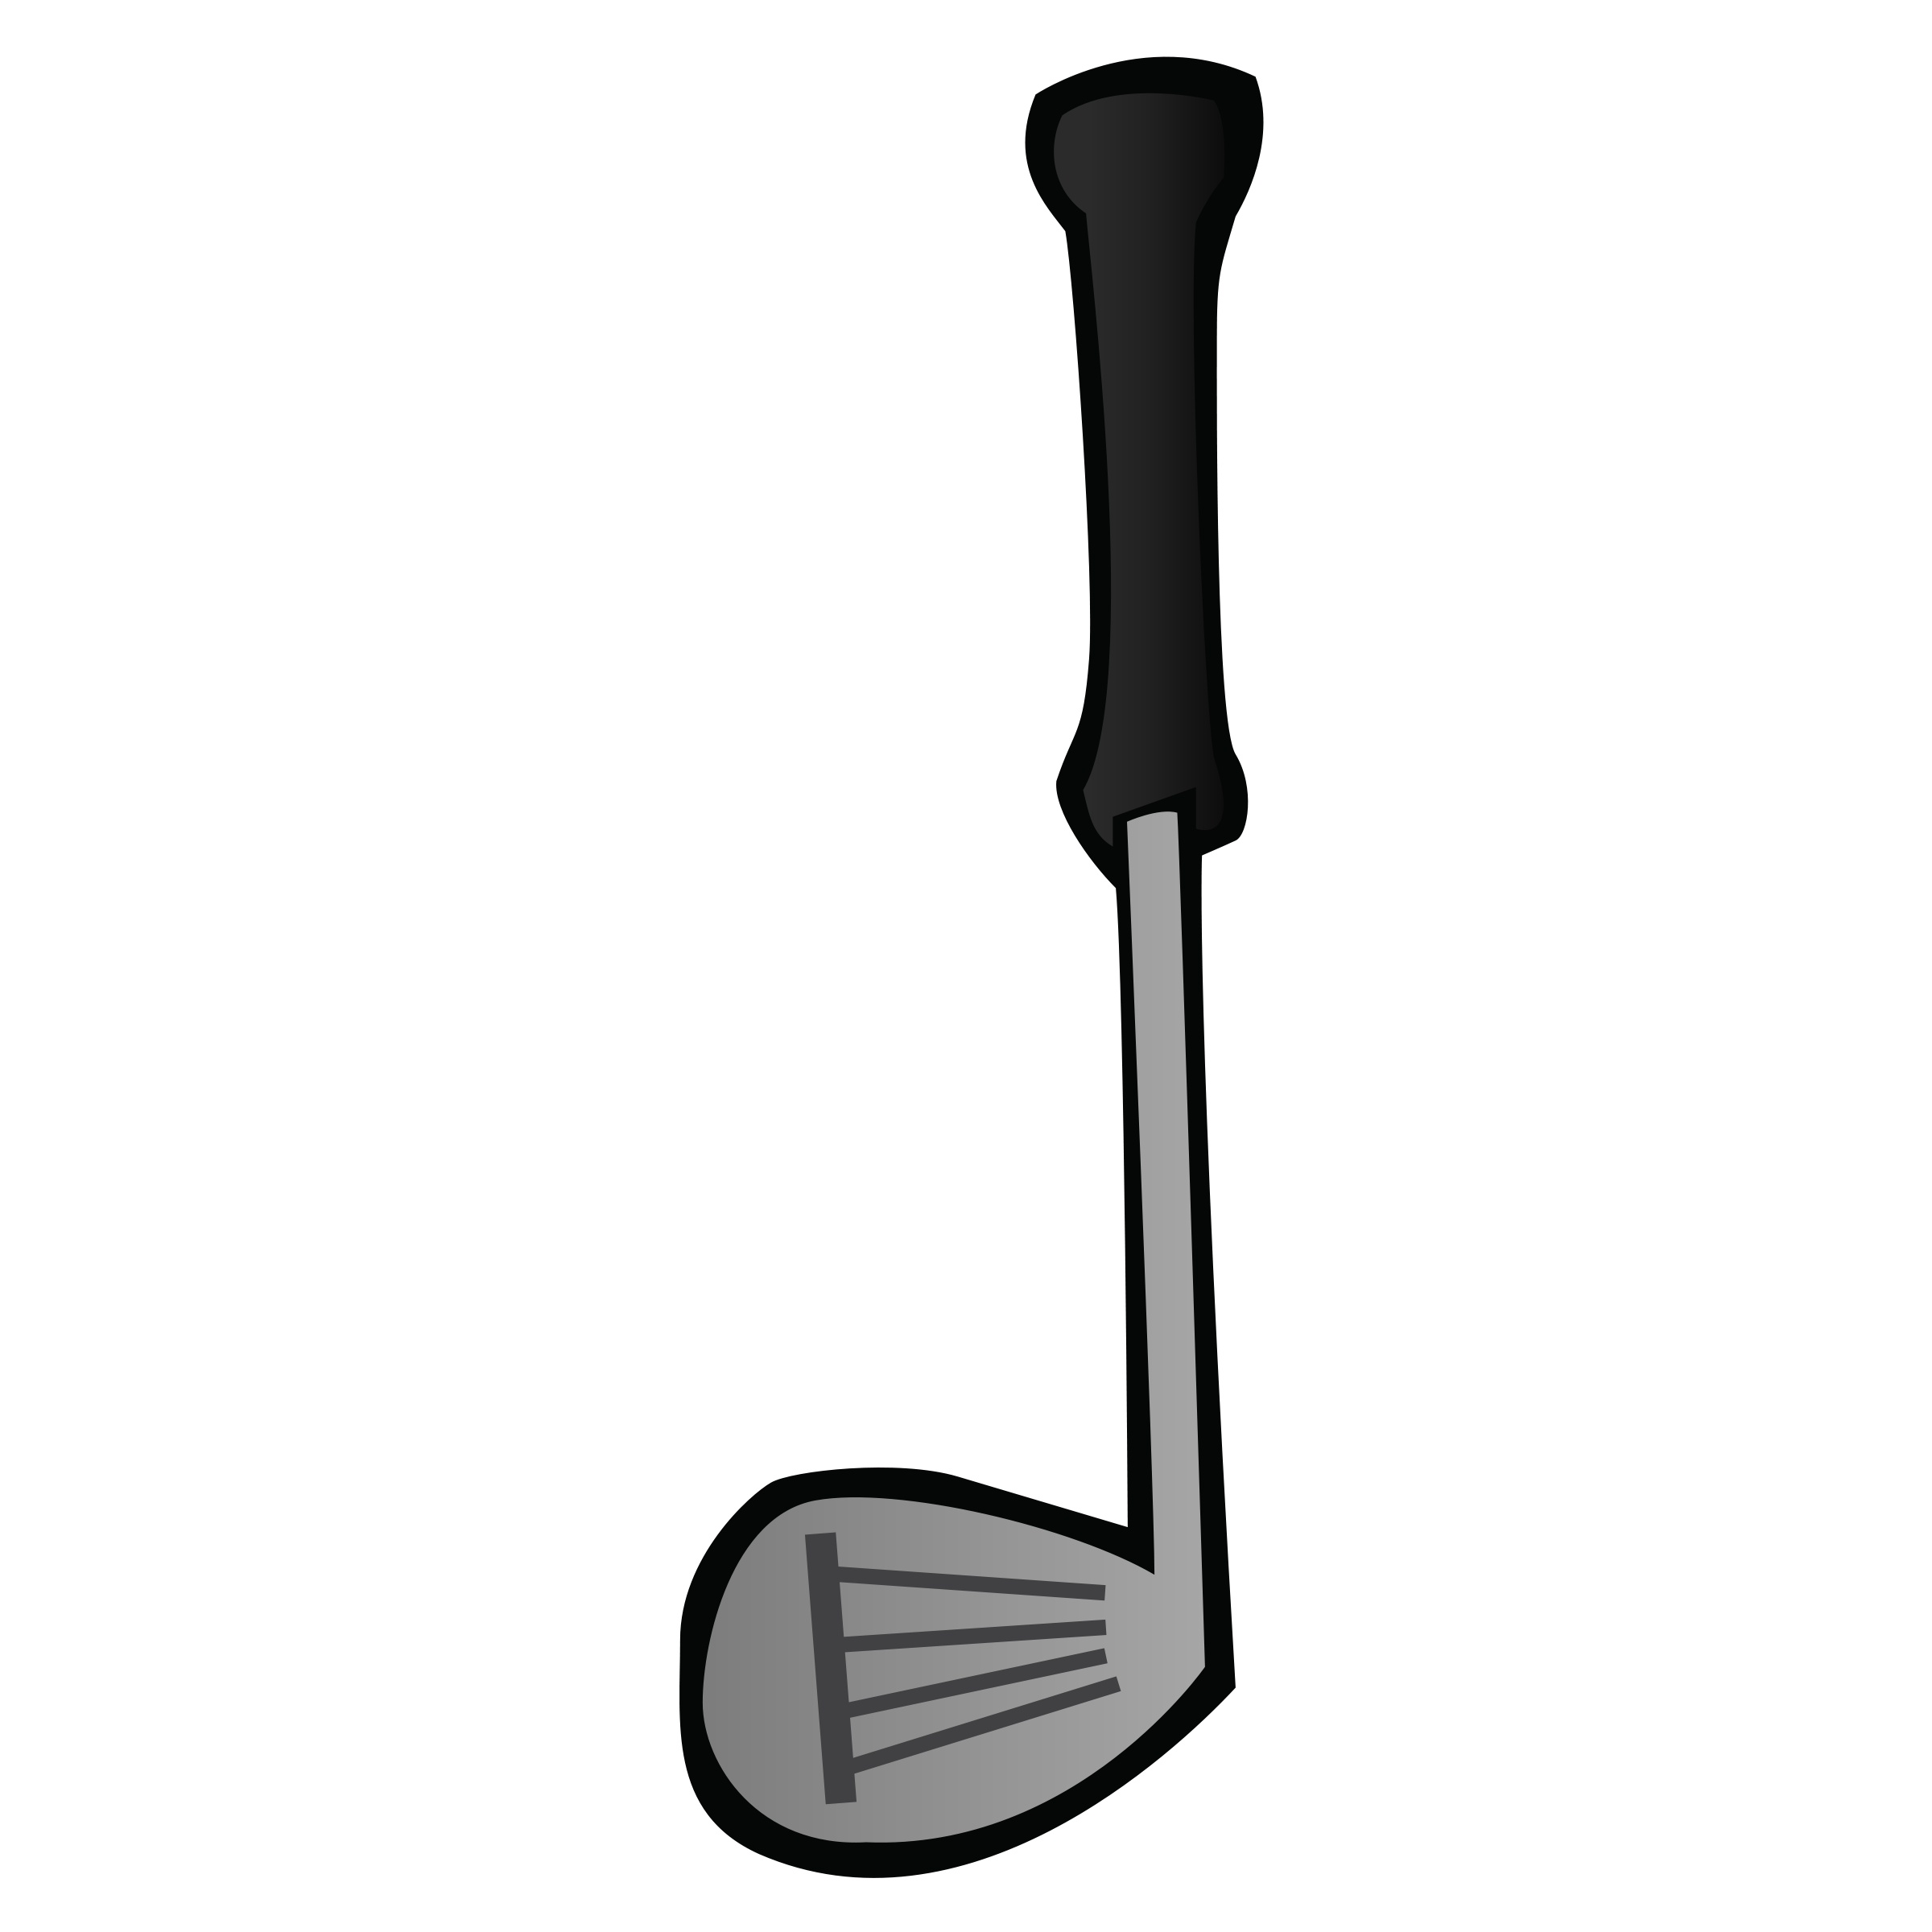 Club clipart ball. Crossed golf clubs with